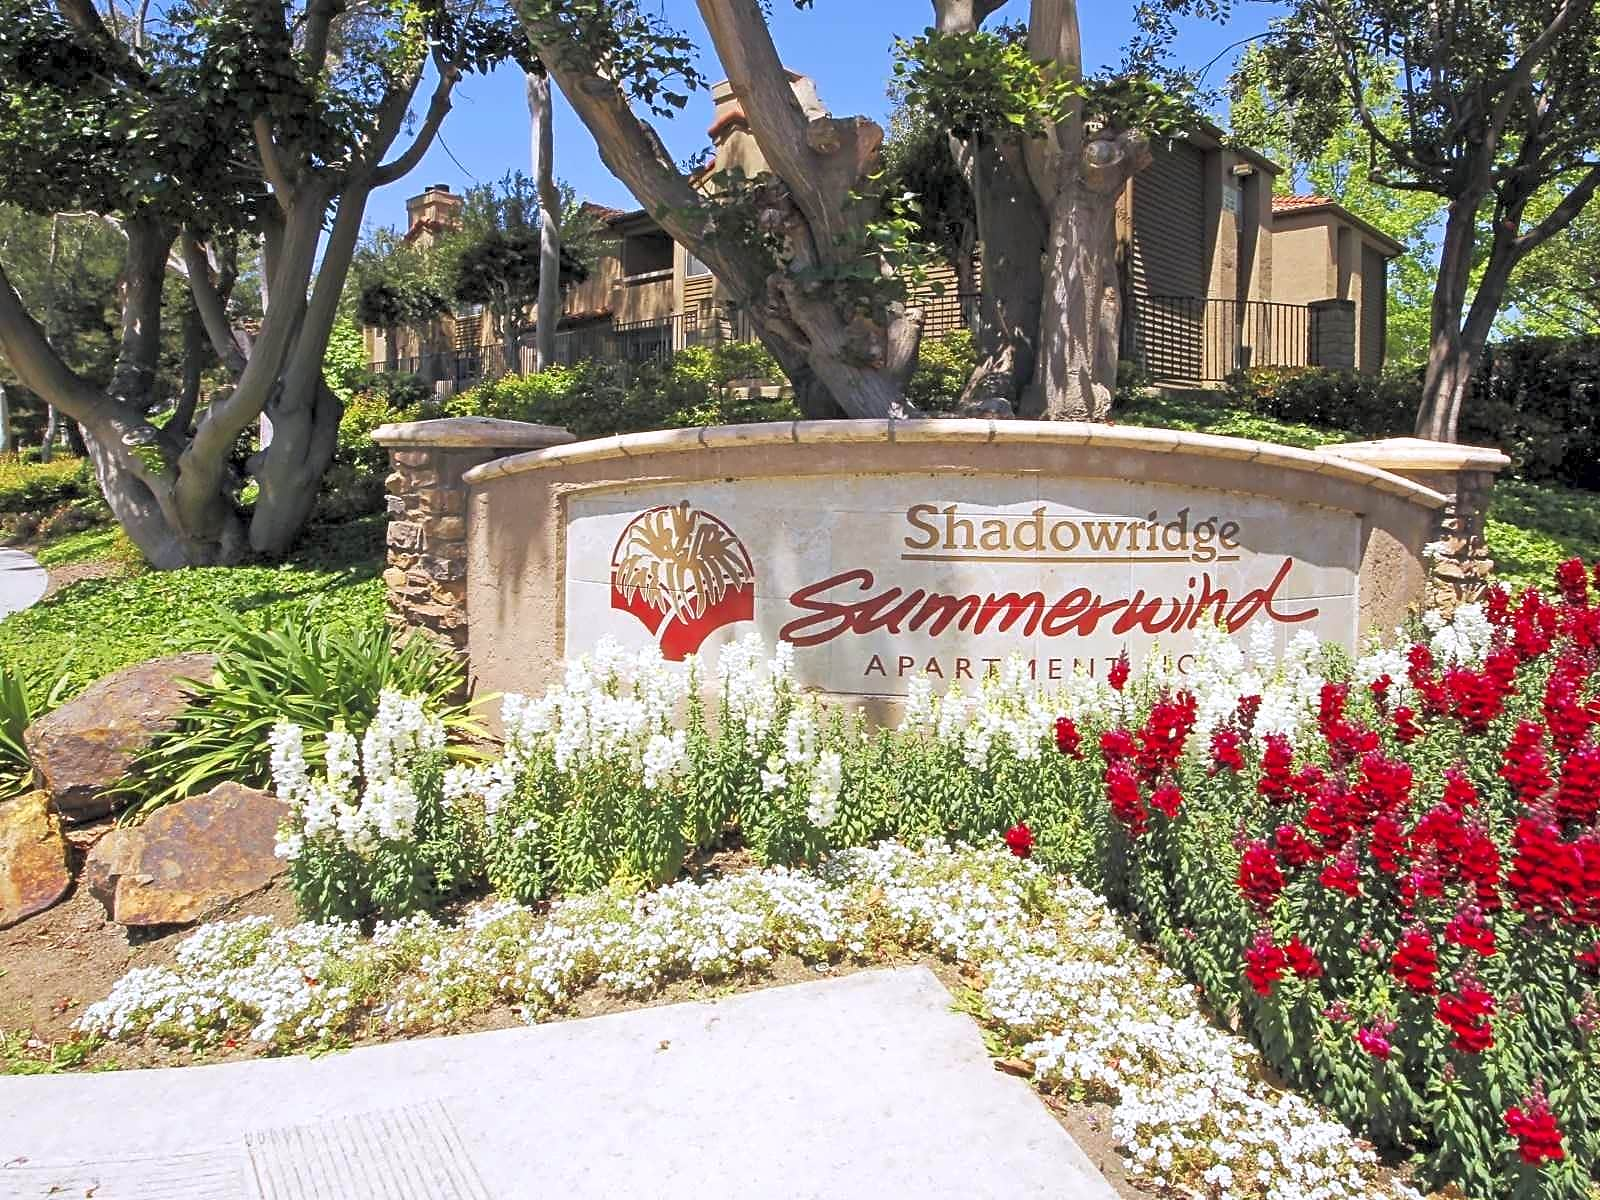 Shadowridge Summerwind Apartments Vista Ca